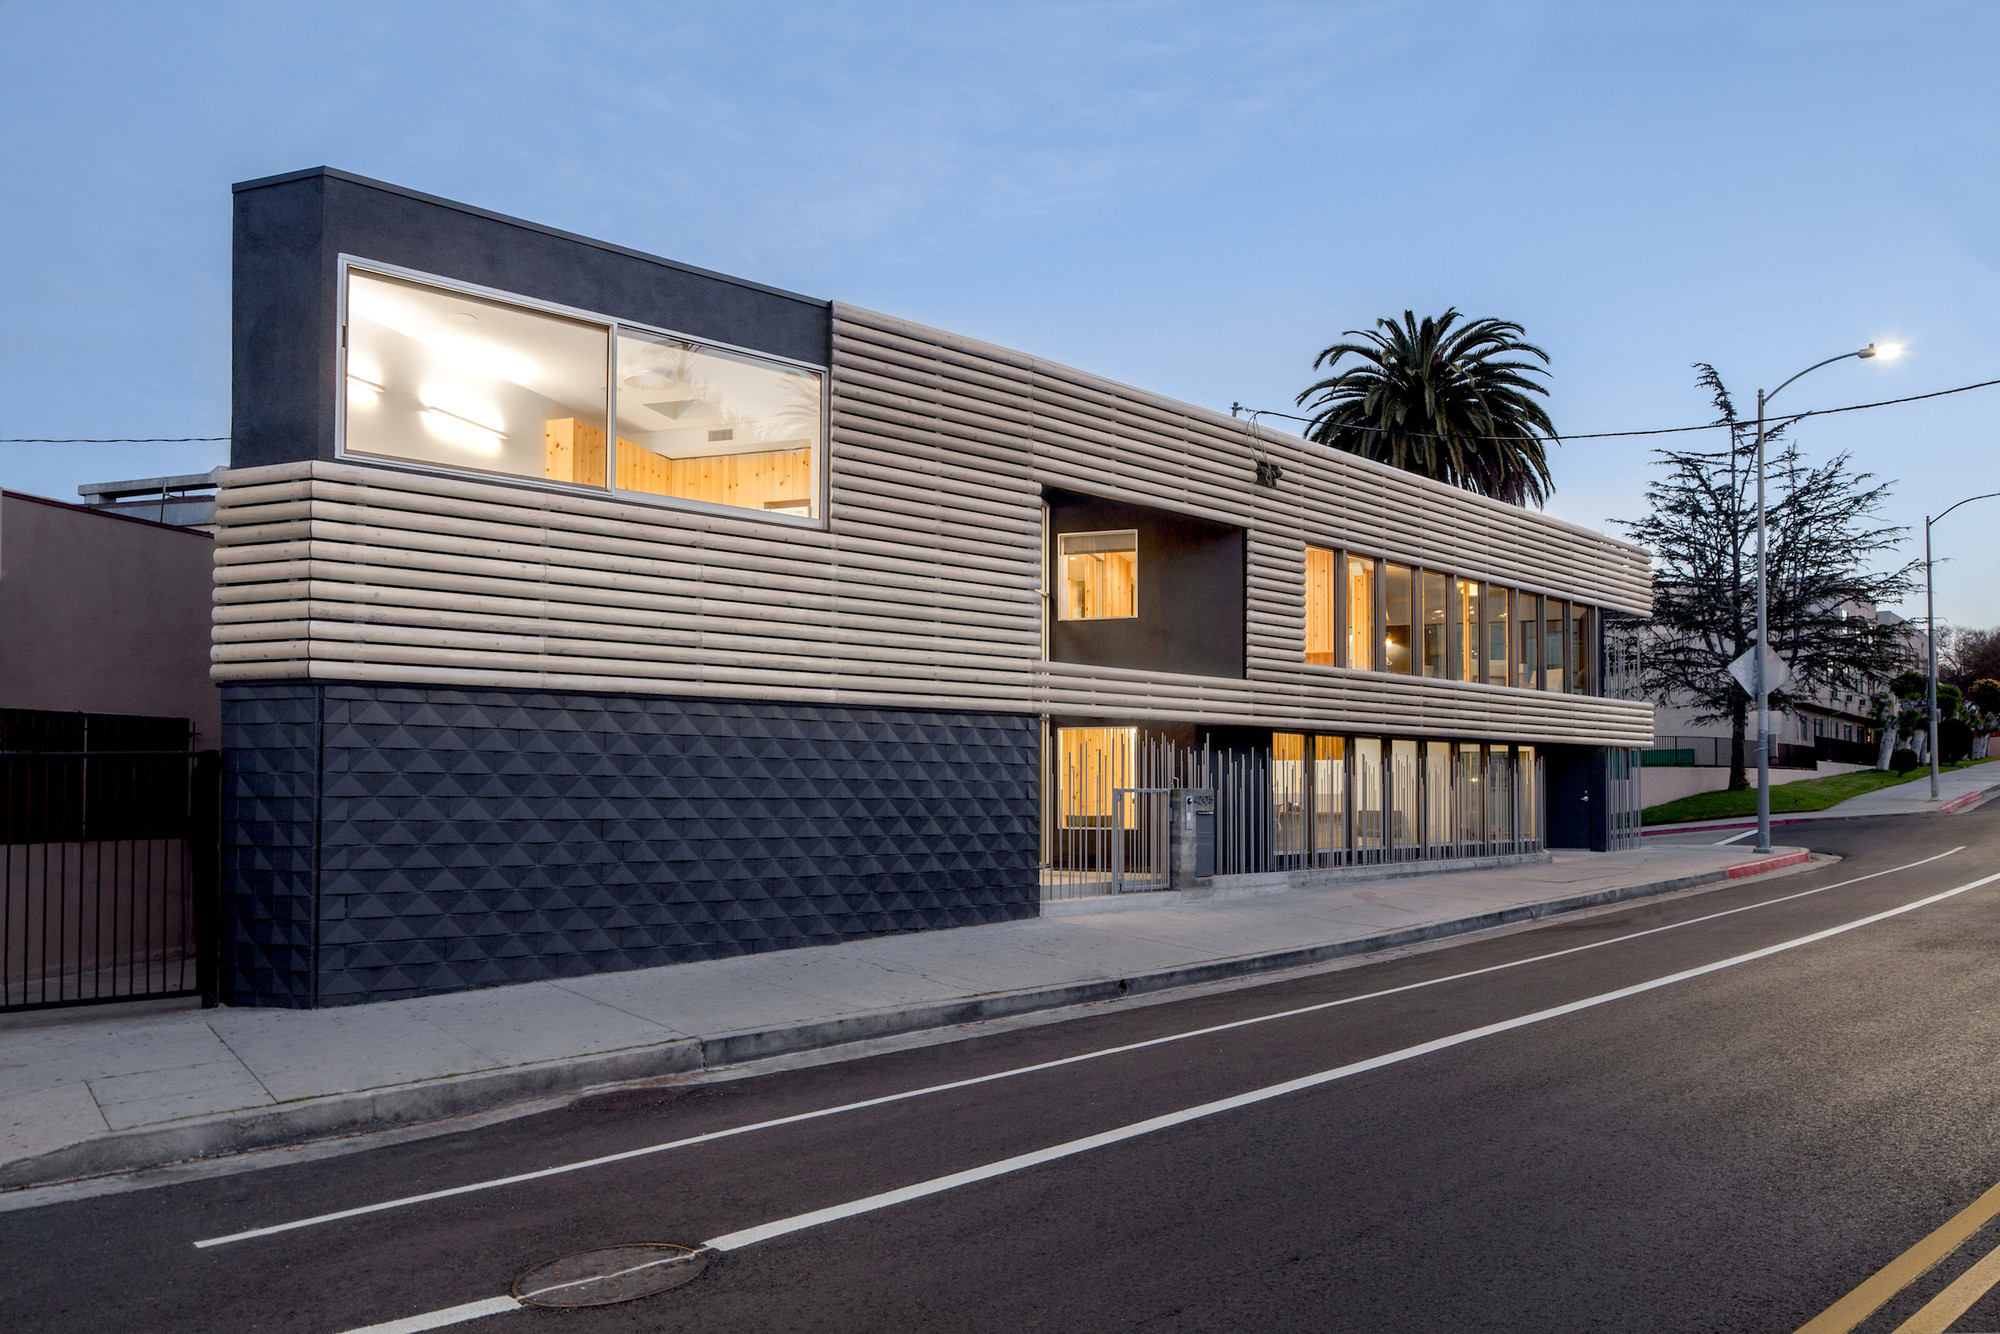 Gallery of 2014 Los Angeles Architectural Awards Announced - 35